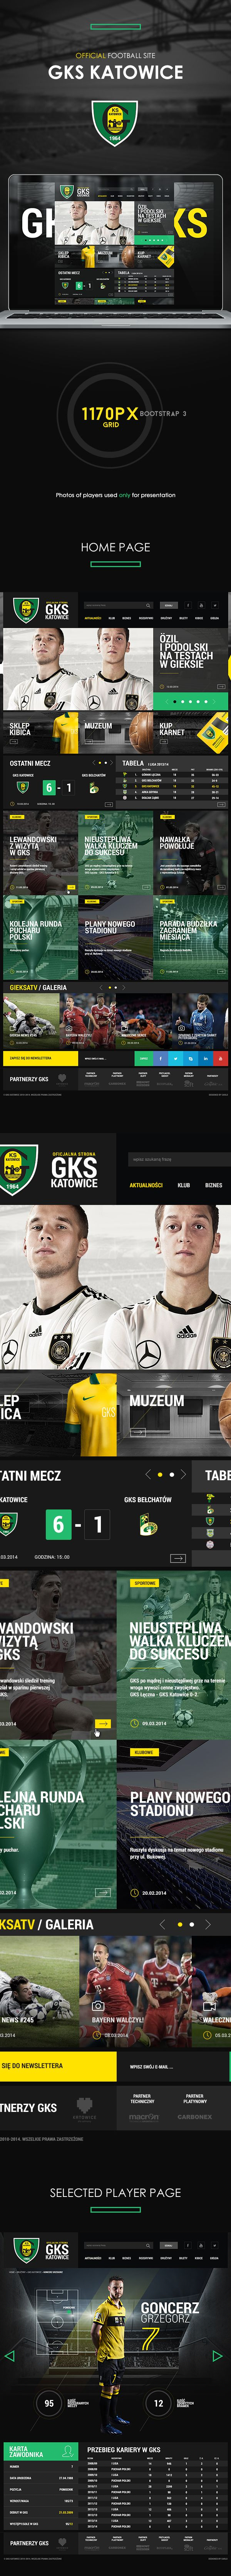 Official Football Site - GKS Katowice on Behance